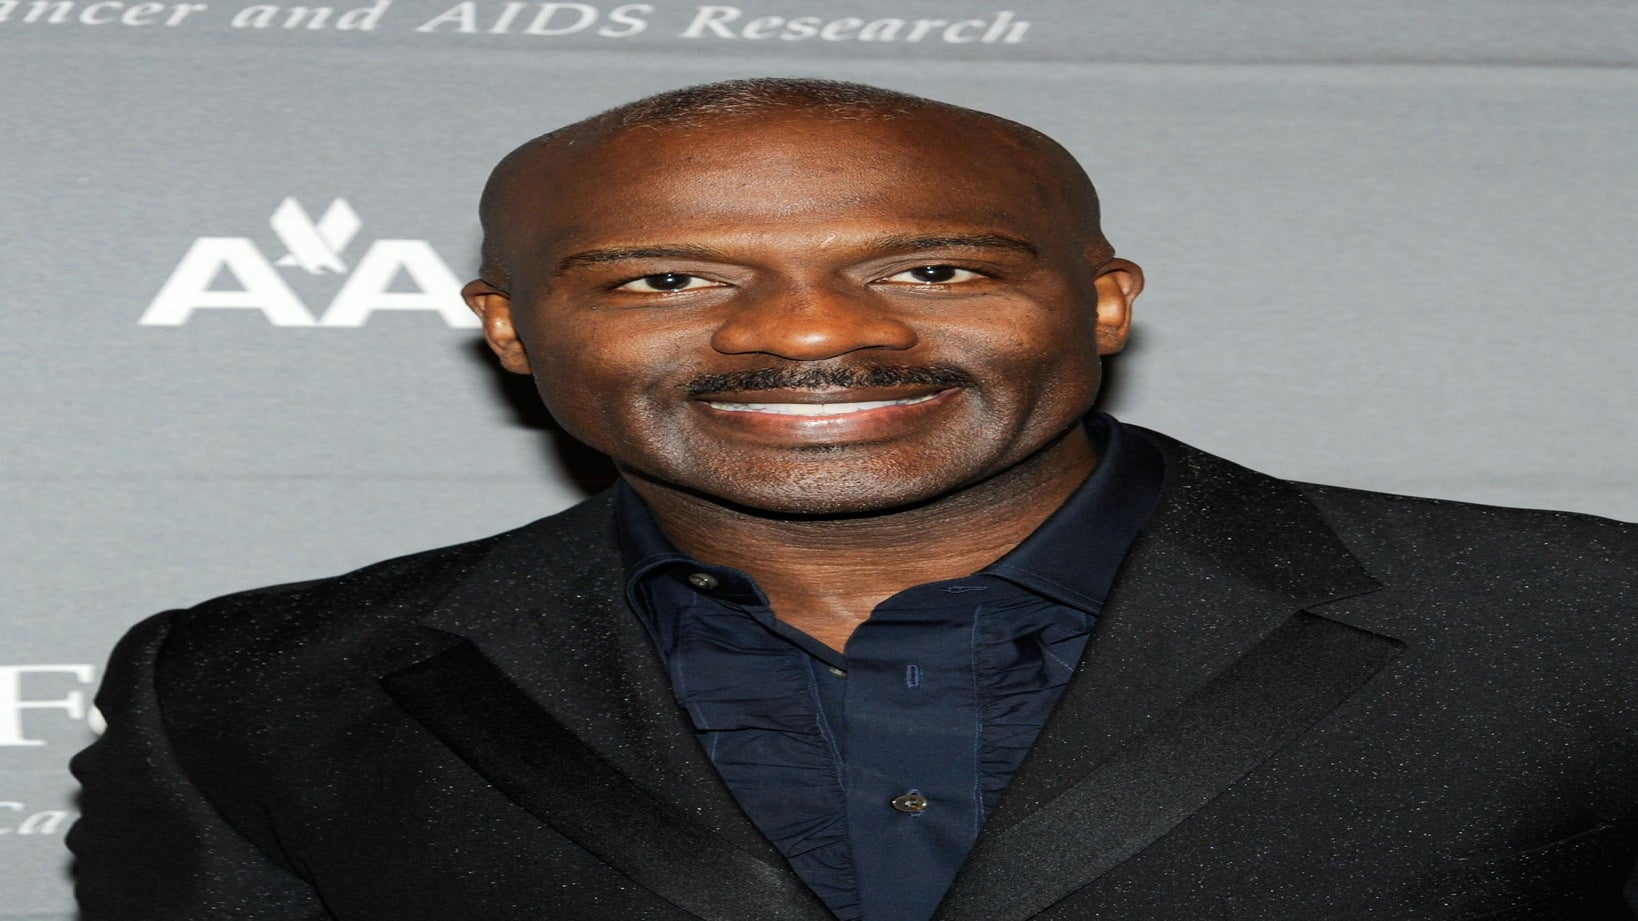 BeBe Winans on 3WB, New Group with Brothers Marvin and Carvin